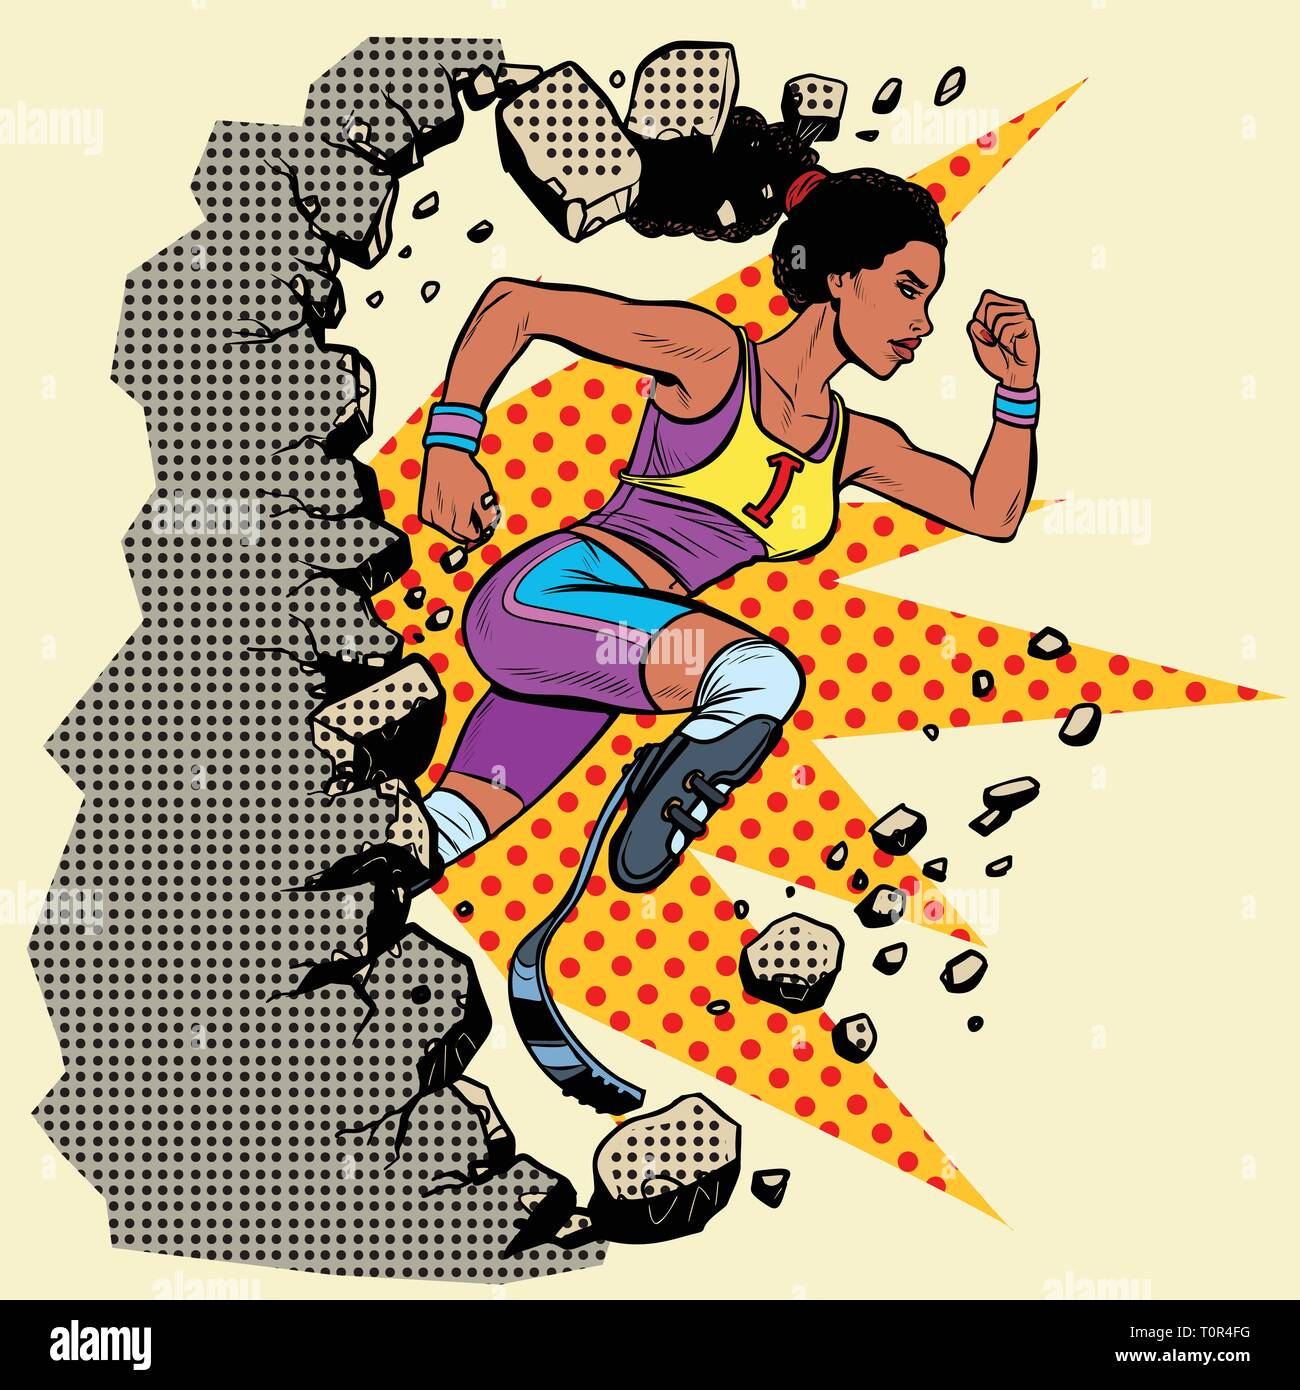 breaks the wall disabled African woman runner with leg prostheses running forward. sports competition. Pop art retro vector illustration vintage kitsc - Stock Vector